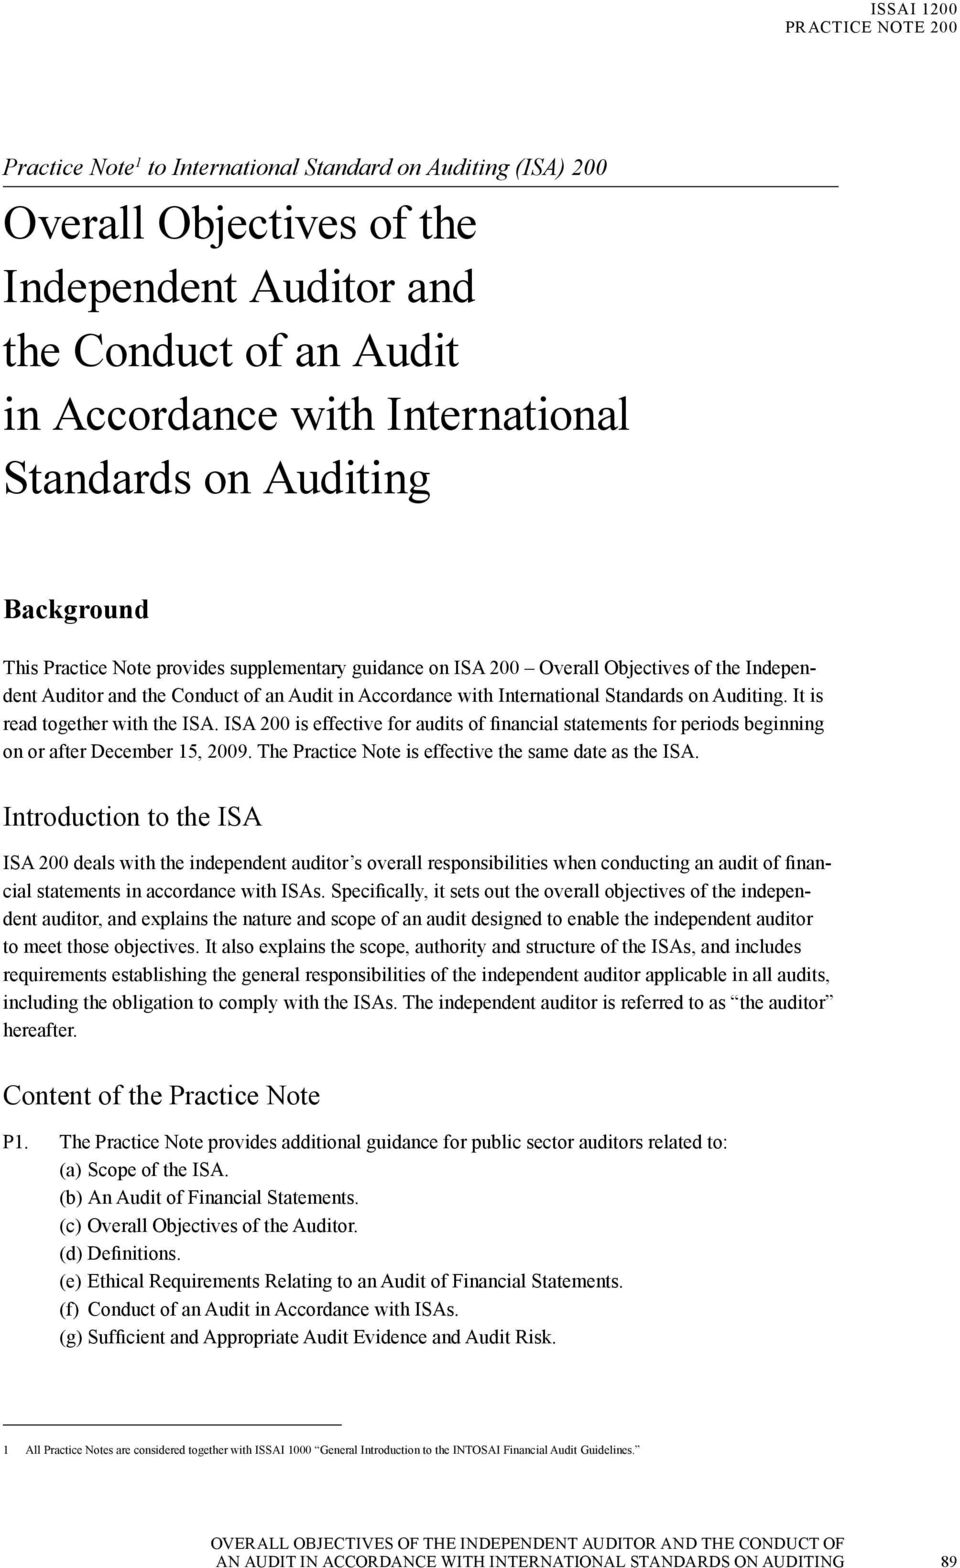 Auditing. It is read together with the ISA. is effective for audits of financial statements for periods beginning on or after December 15, 2009.